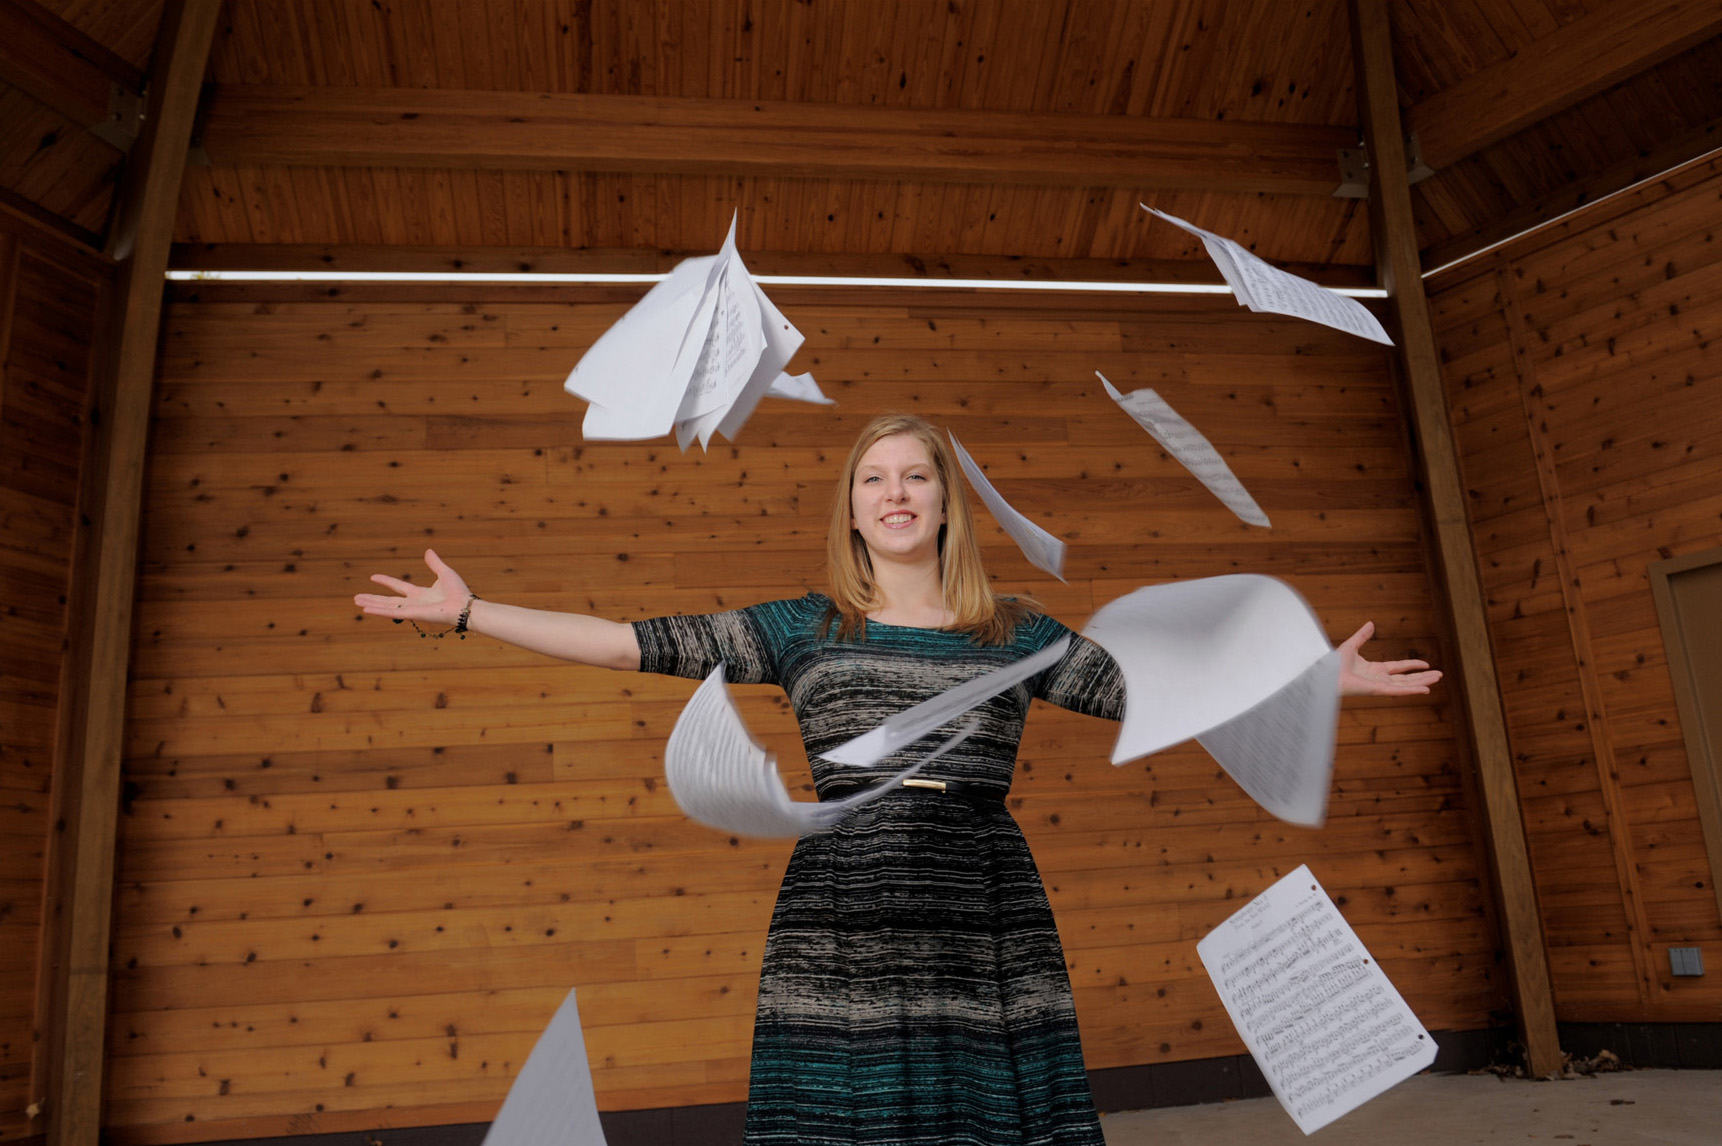 A Lake Orion, Michigan senior throws up her sheet music for a fun and dramatic photo of a musician.